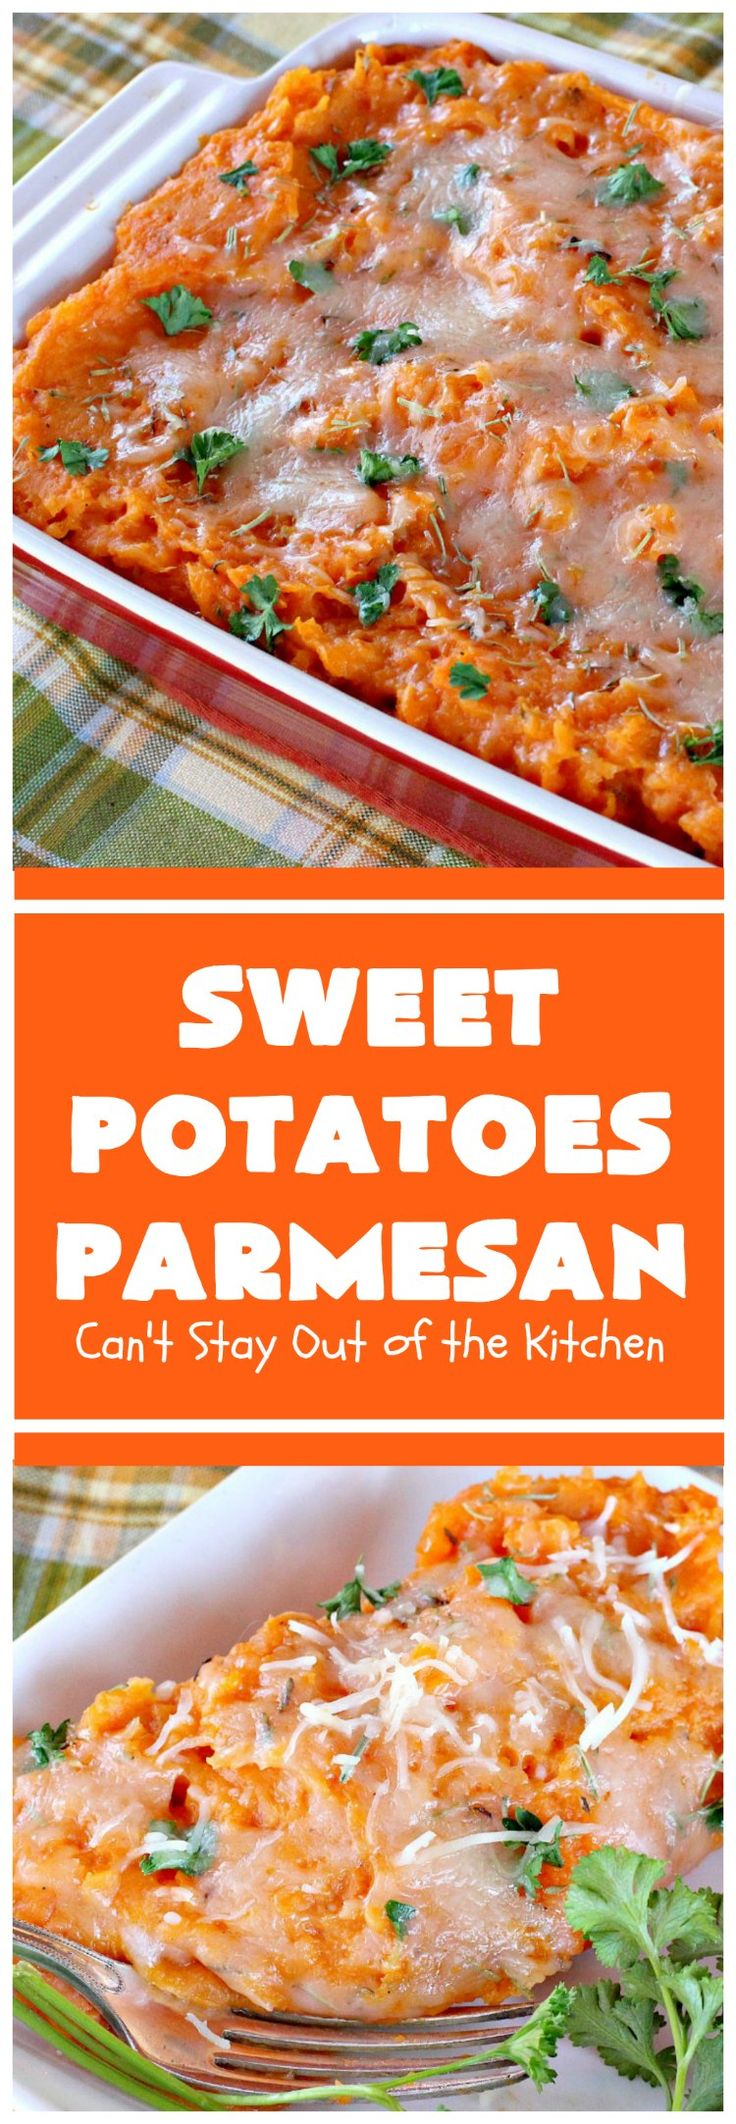 Sweet Potatoes Parmesan   Can't Stay Out of the Kitchen   this is one of our favorite savory #sweetpotato #casseroles. It's filled & topped with #parmesancheese. Great for #Thanksgiving or #Christmas.